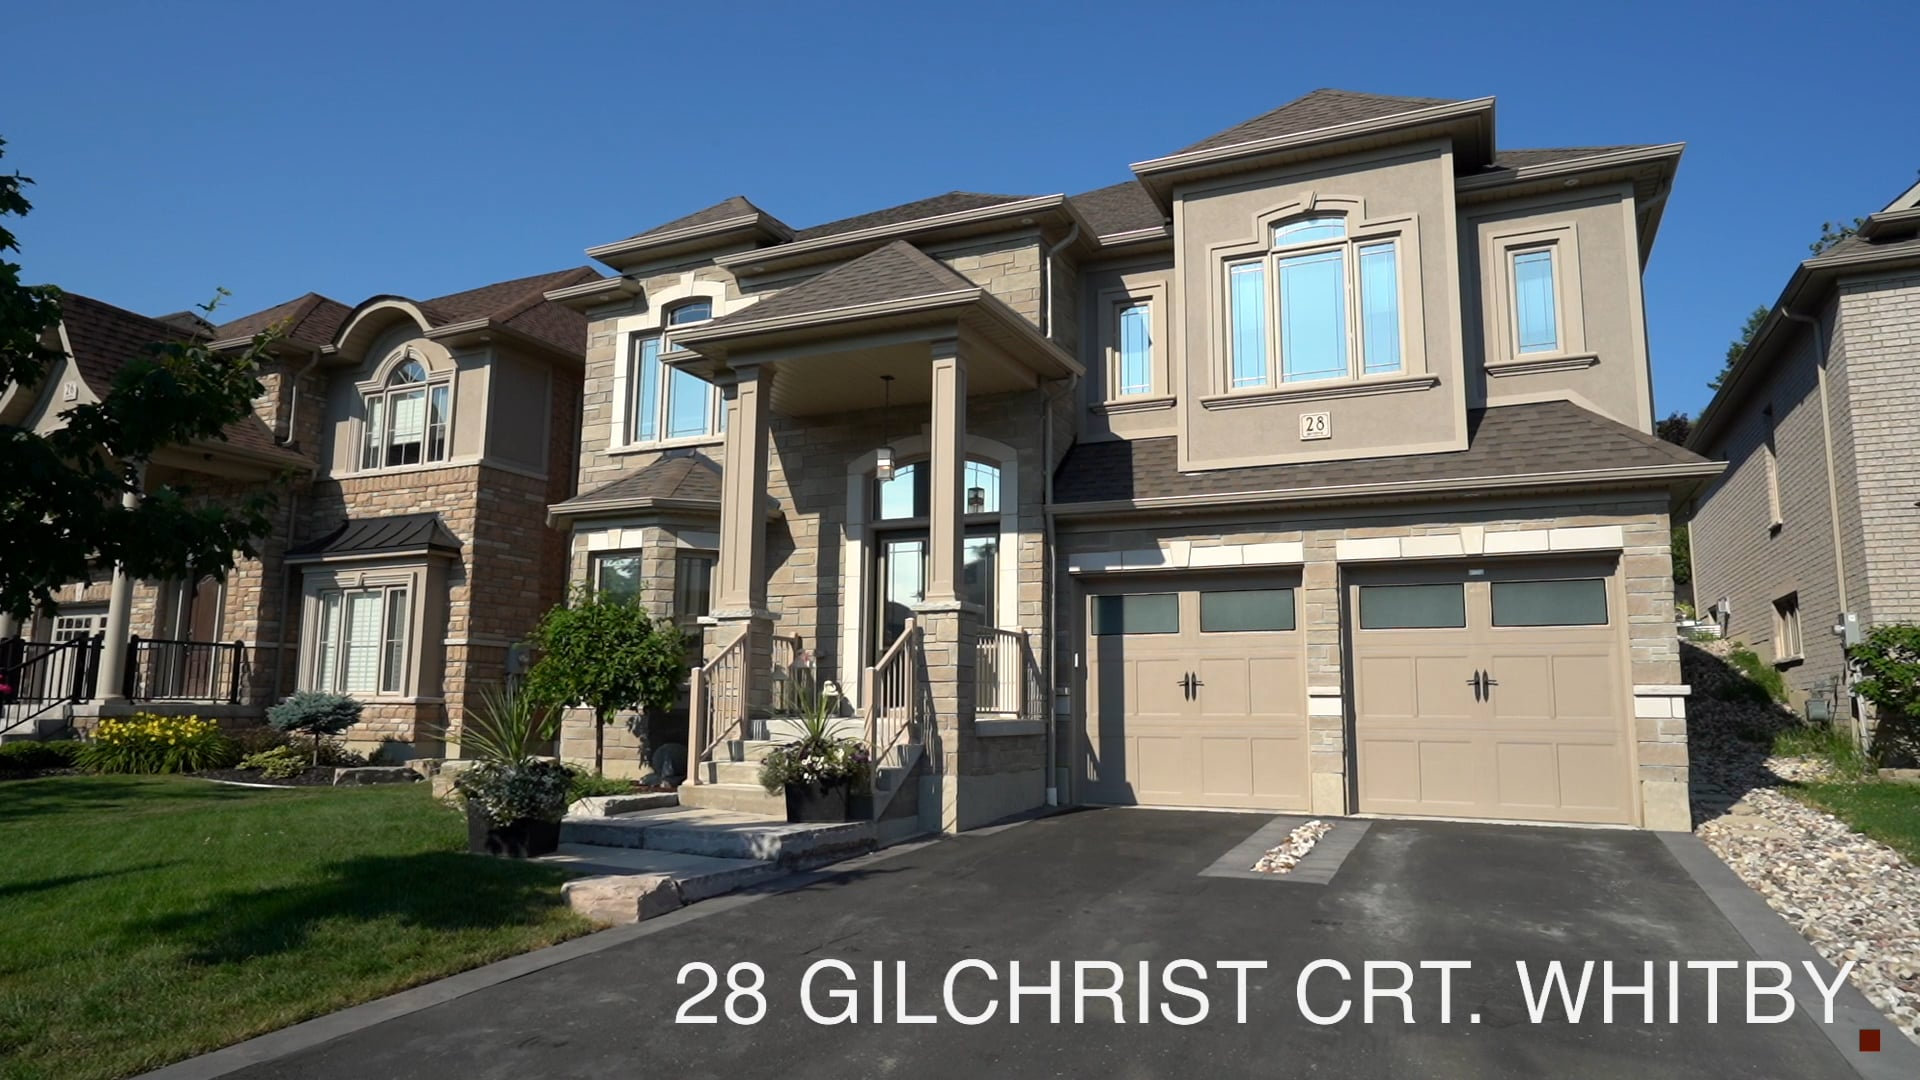 28 Gilchrist Crt, Whitby